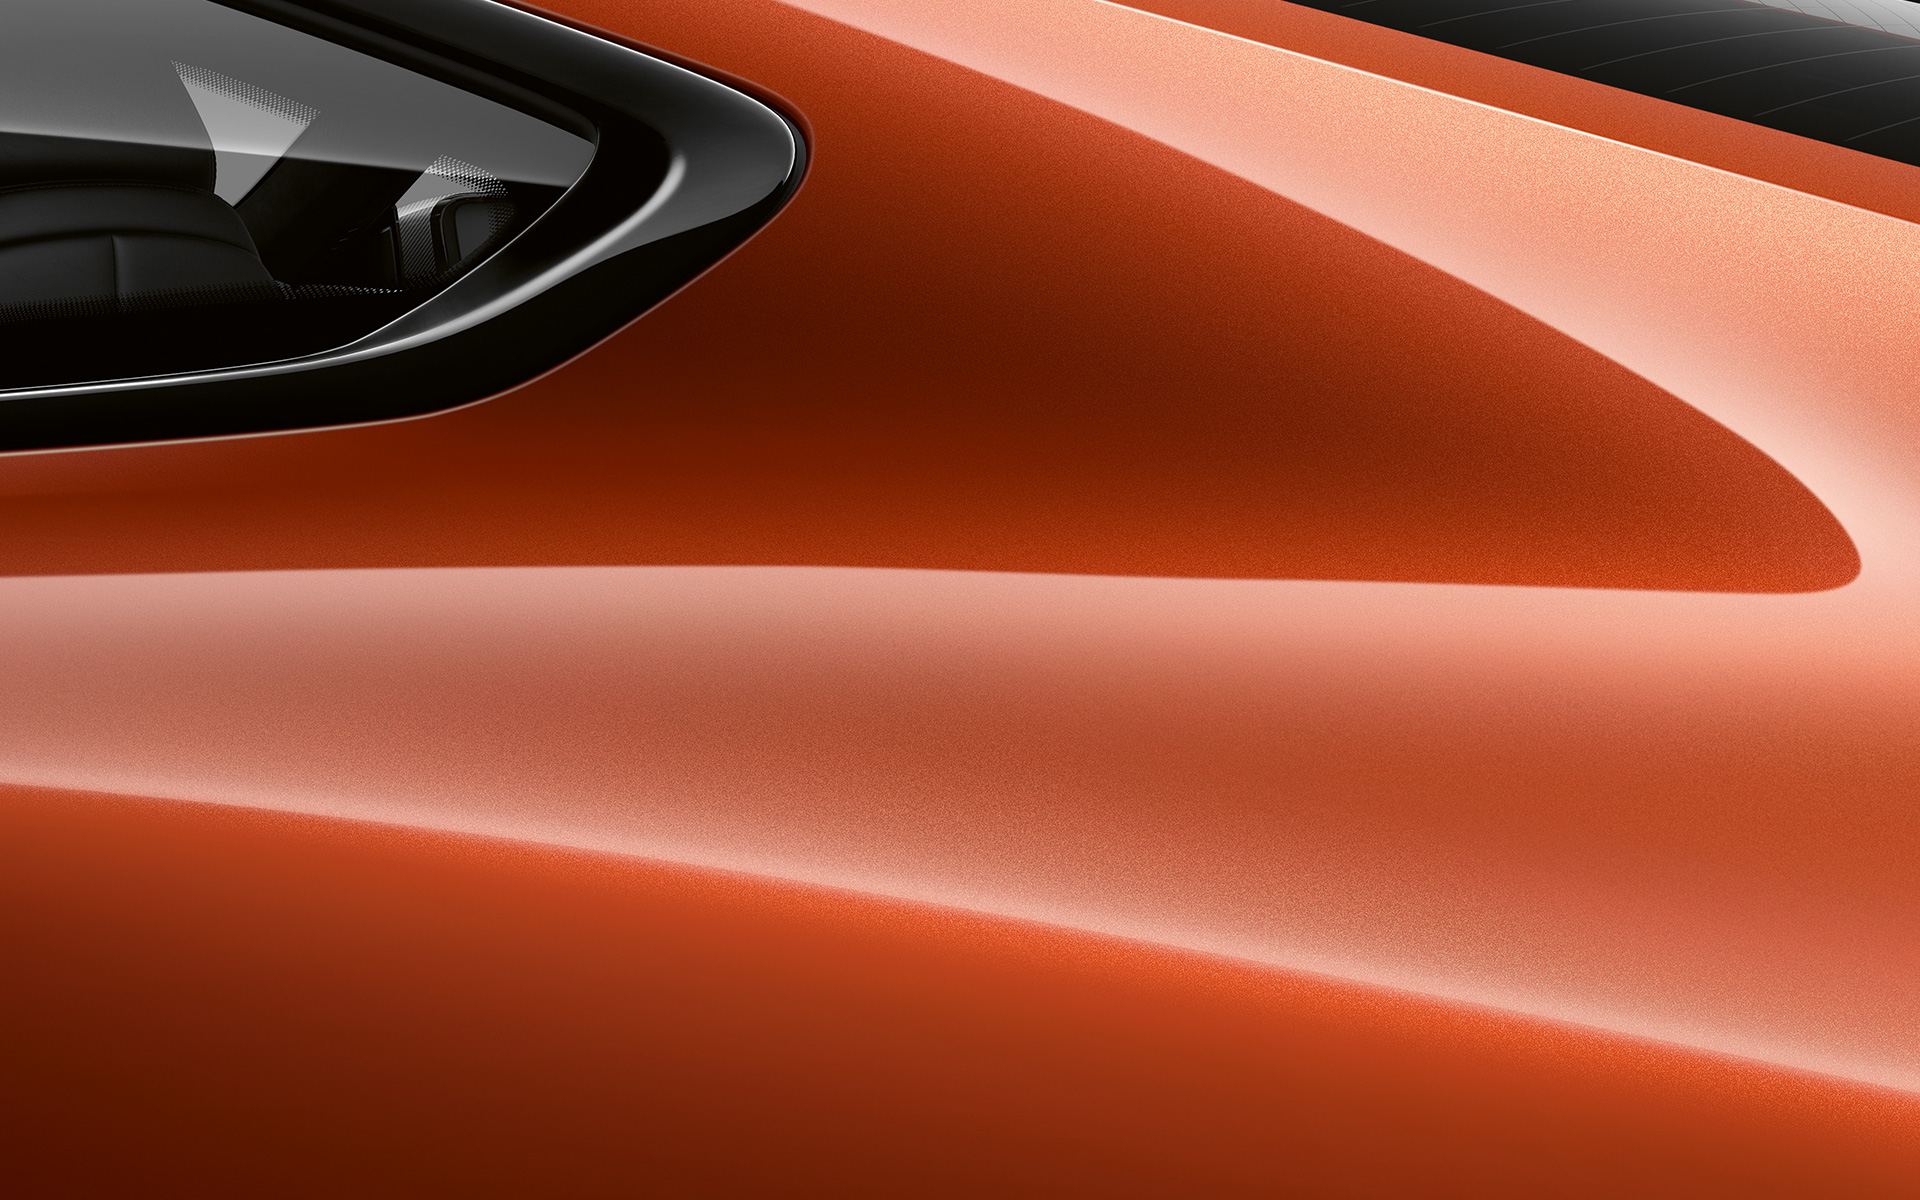 Close-up of the C pillar of the BMW 8 Series Coupé in Sunset Orange metallic.